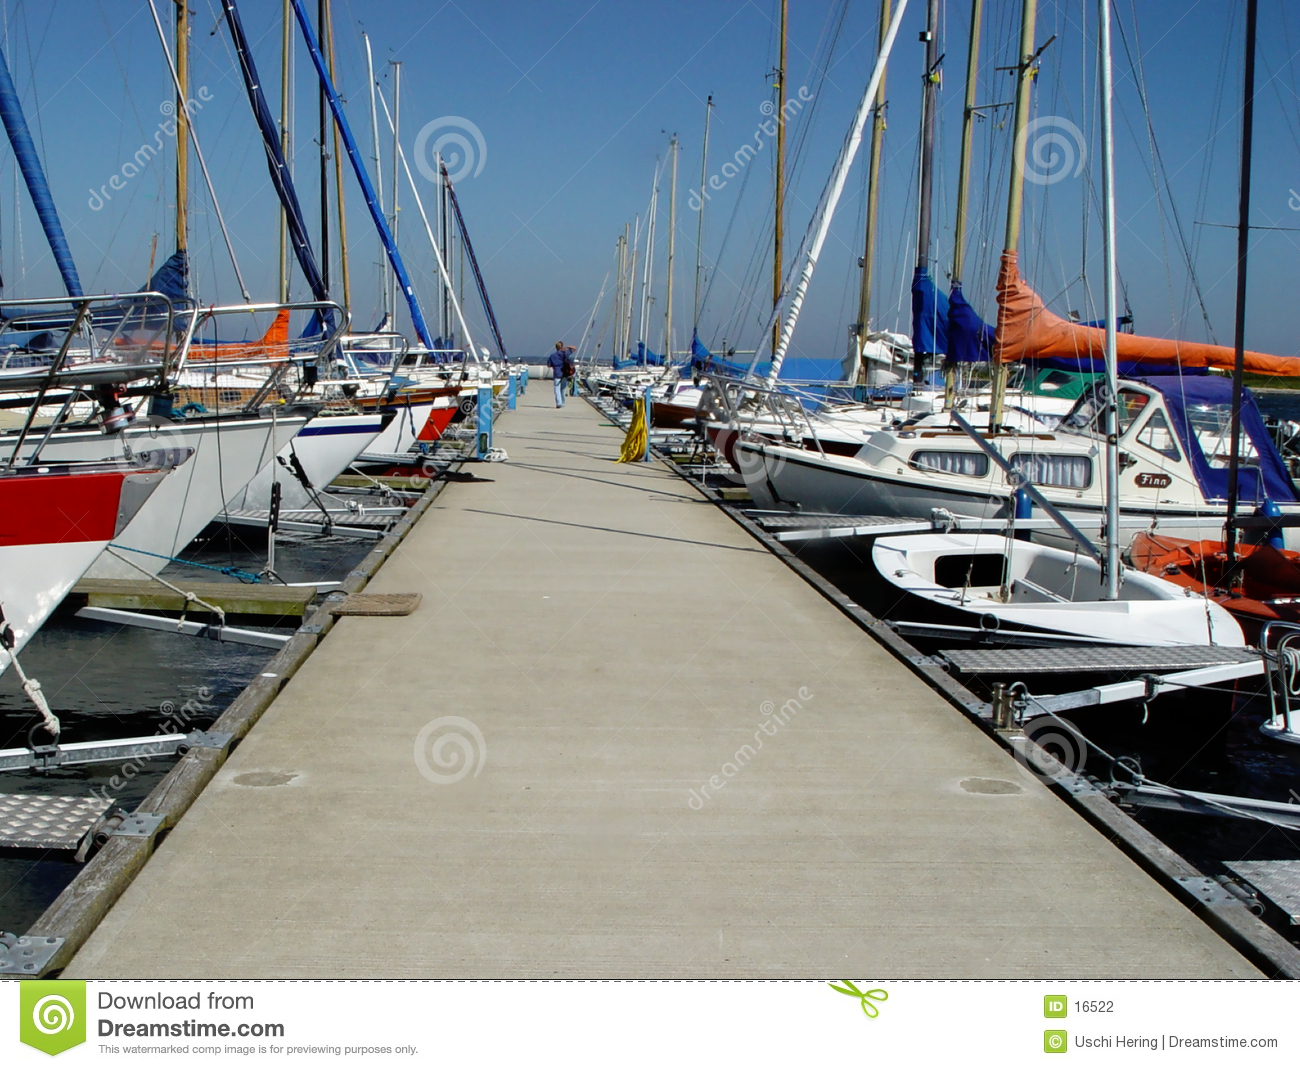 pier in a yachting club